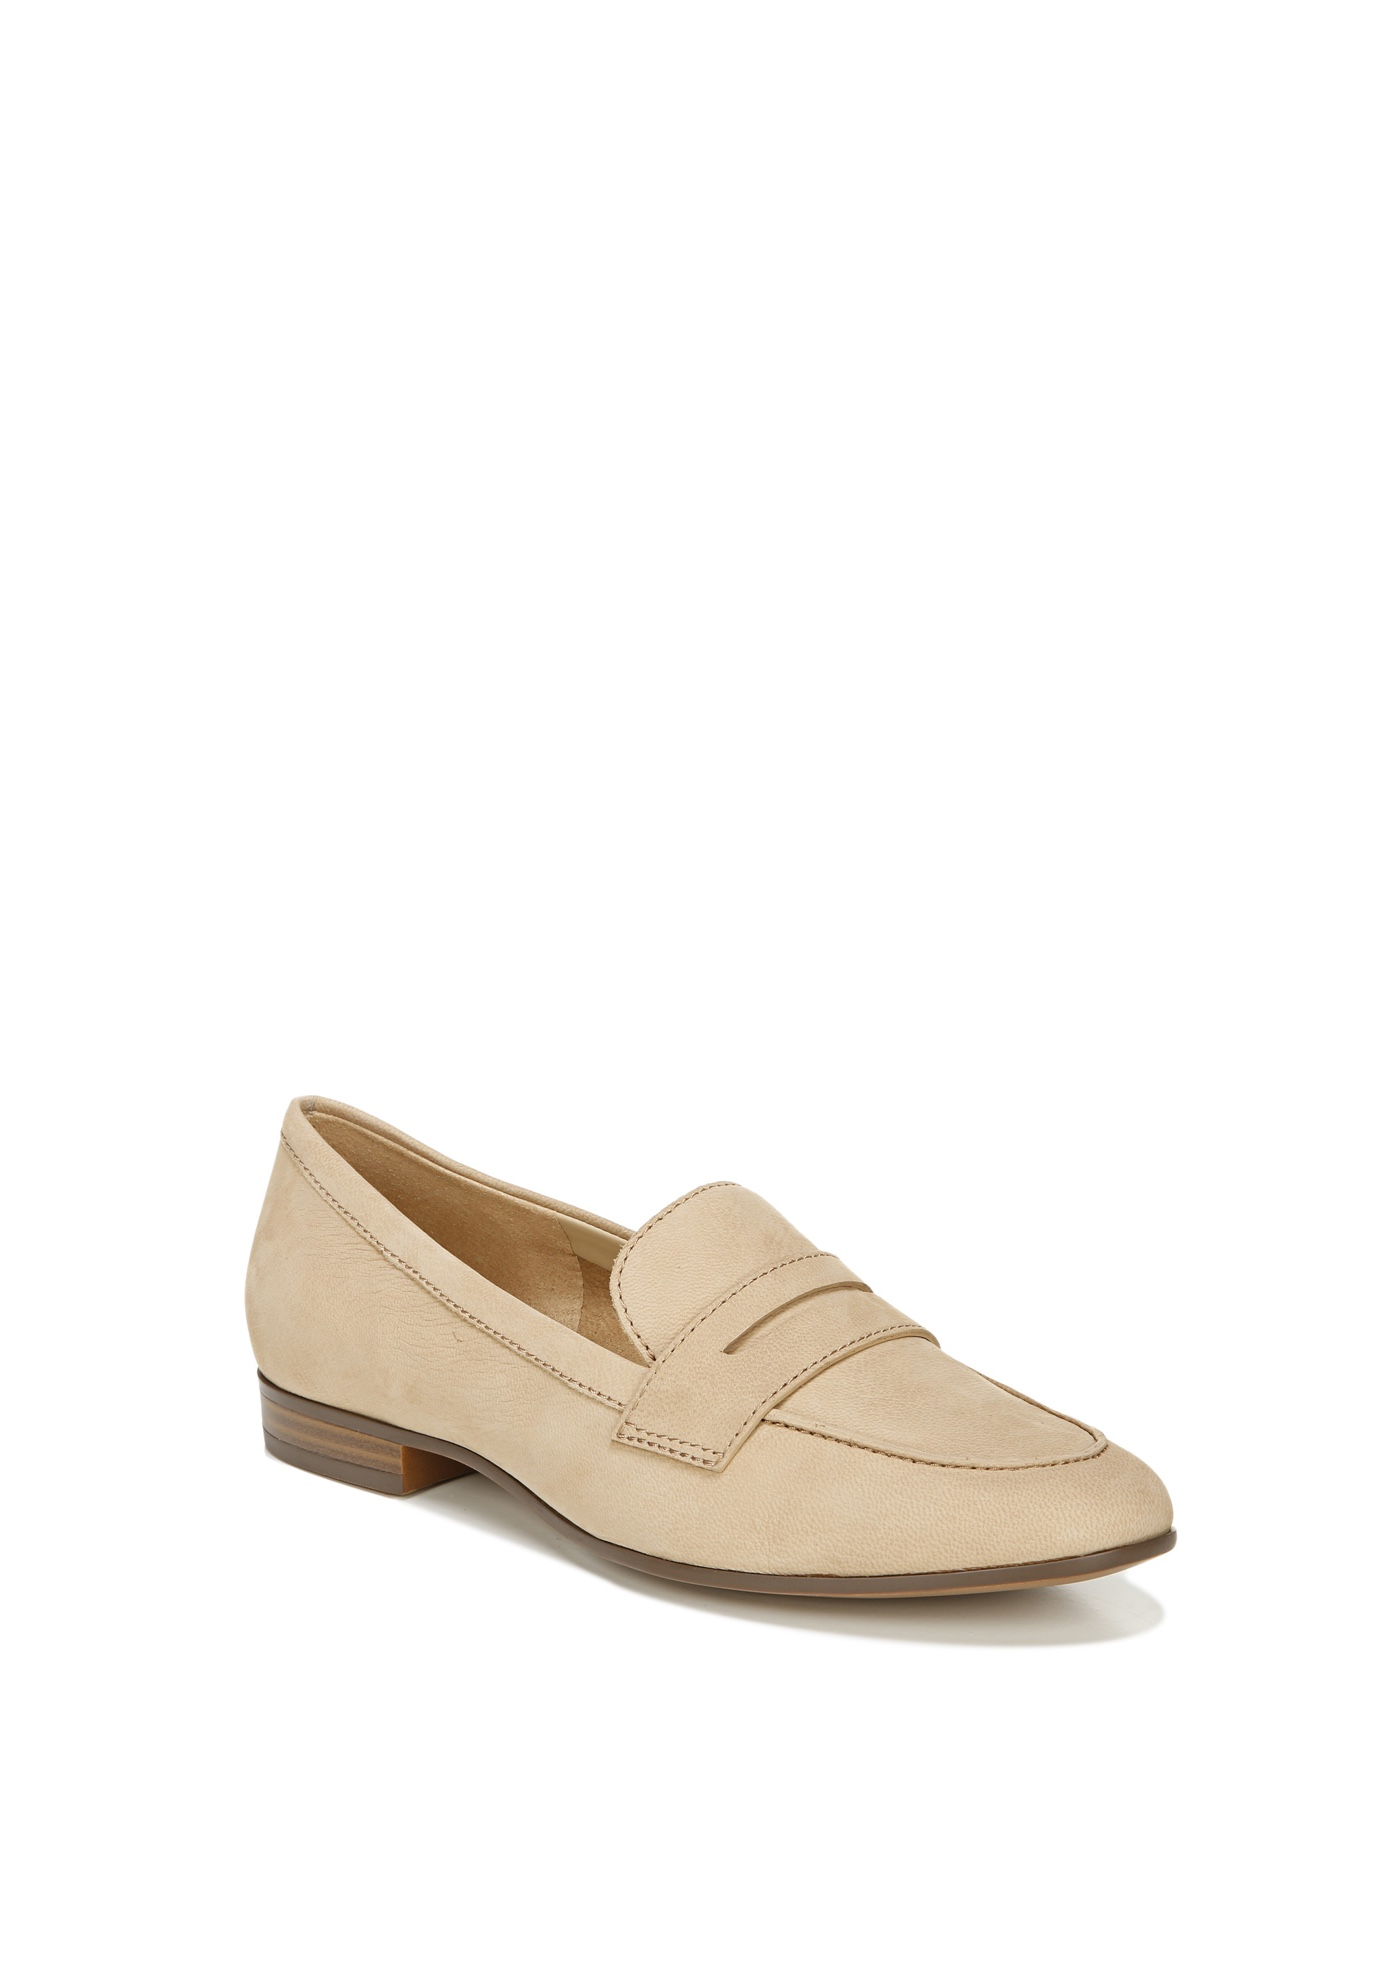 Juliette2 Loafer by Naturalizer,